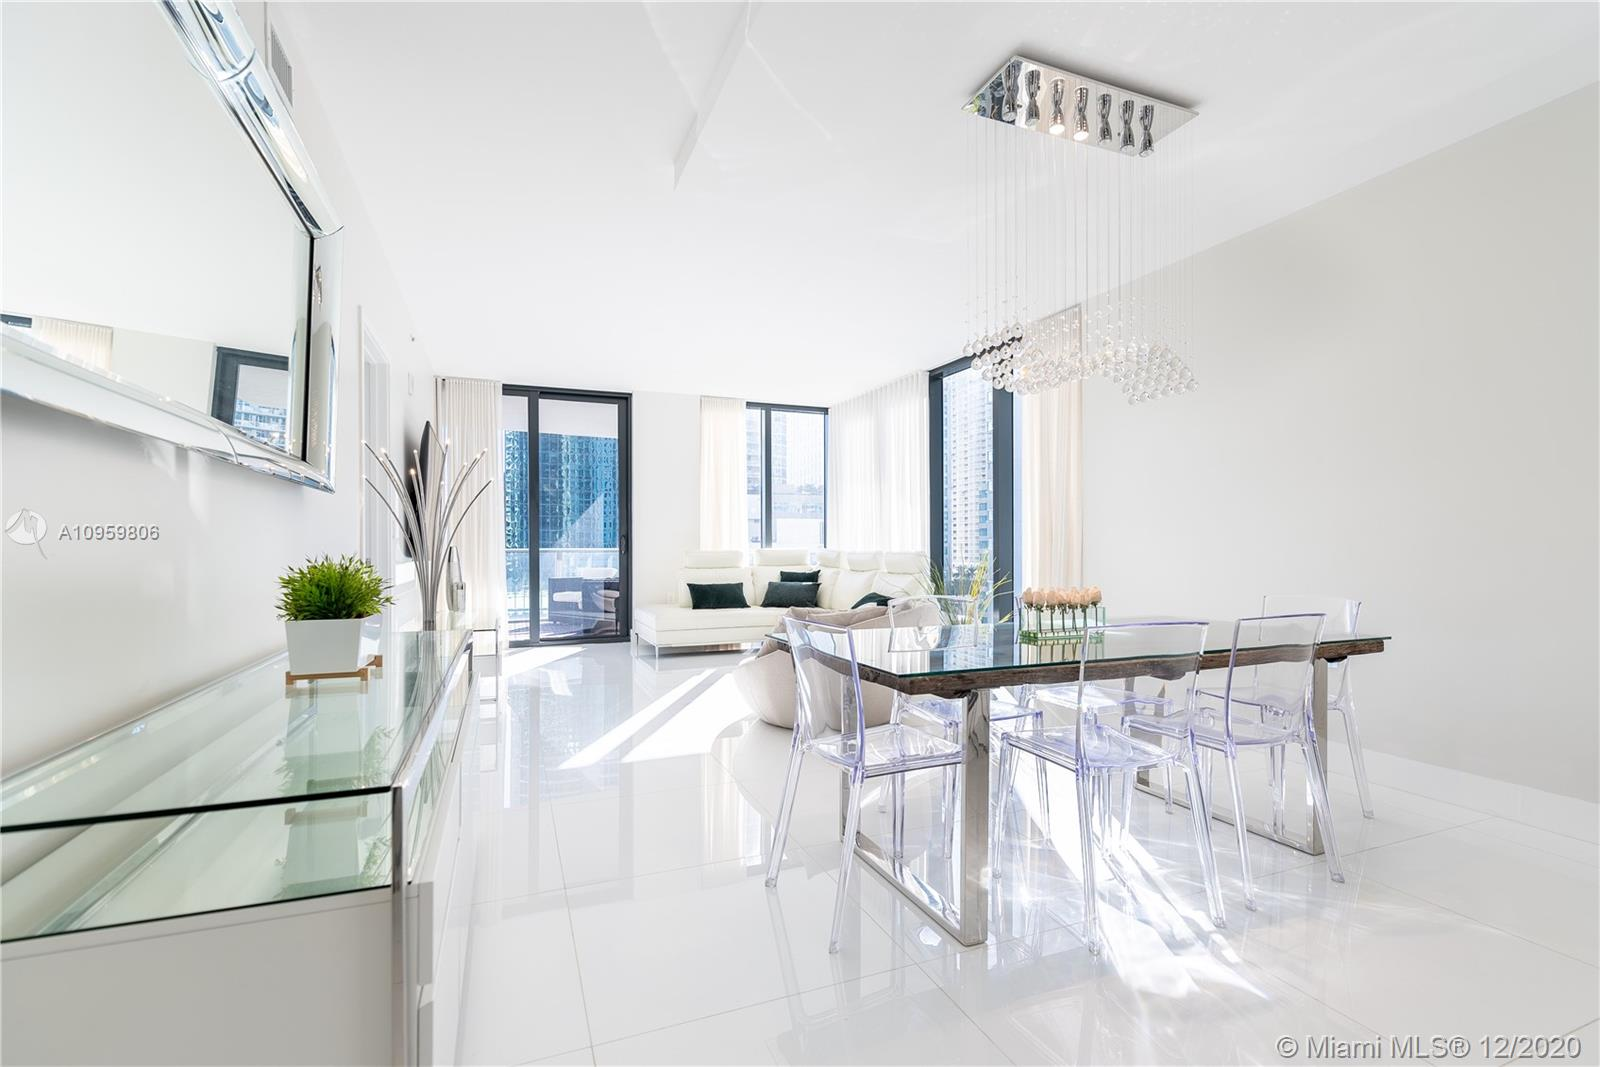 SPECTACULAR BRAND NEW BUILDING IN BRICKELL, WALKING DISTANCE TO BRICKELL CITY CENTER.